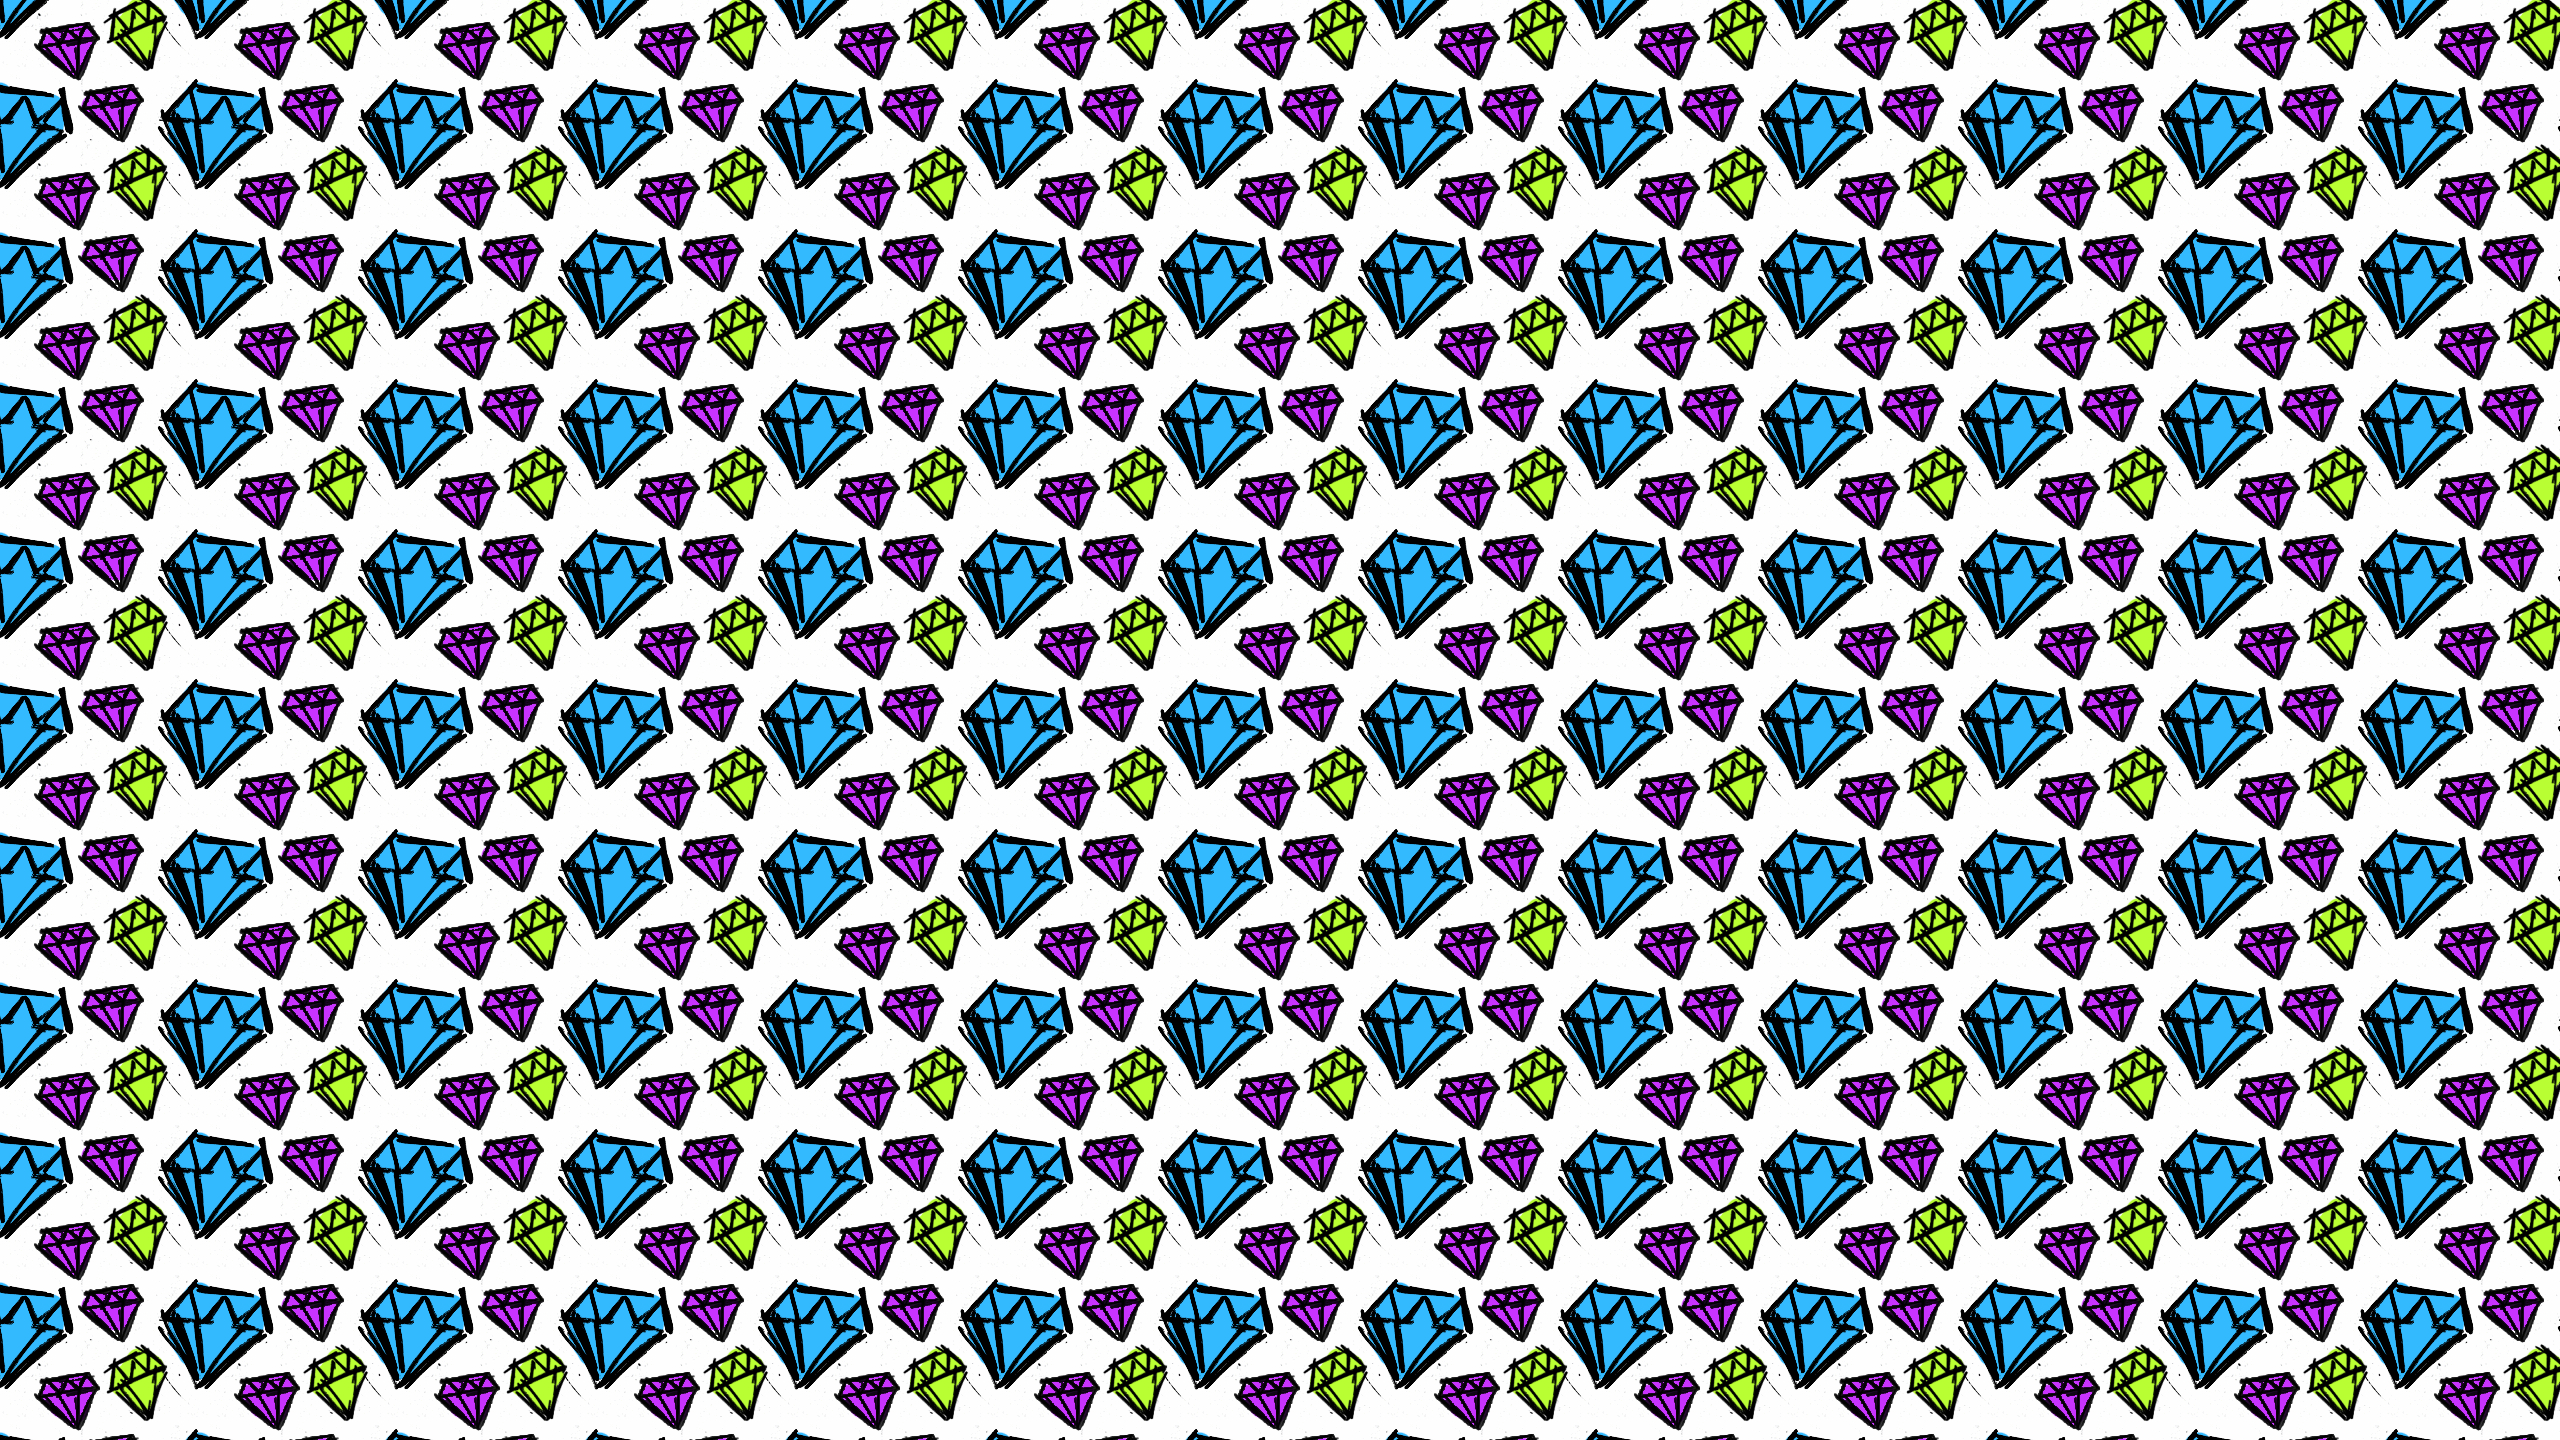 this Kiddy Diamonds Desktop Wallpaper is easy Just save the wallpaper 2560x1440